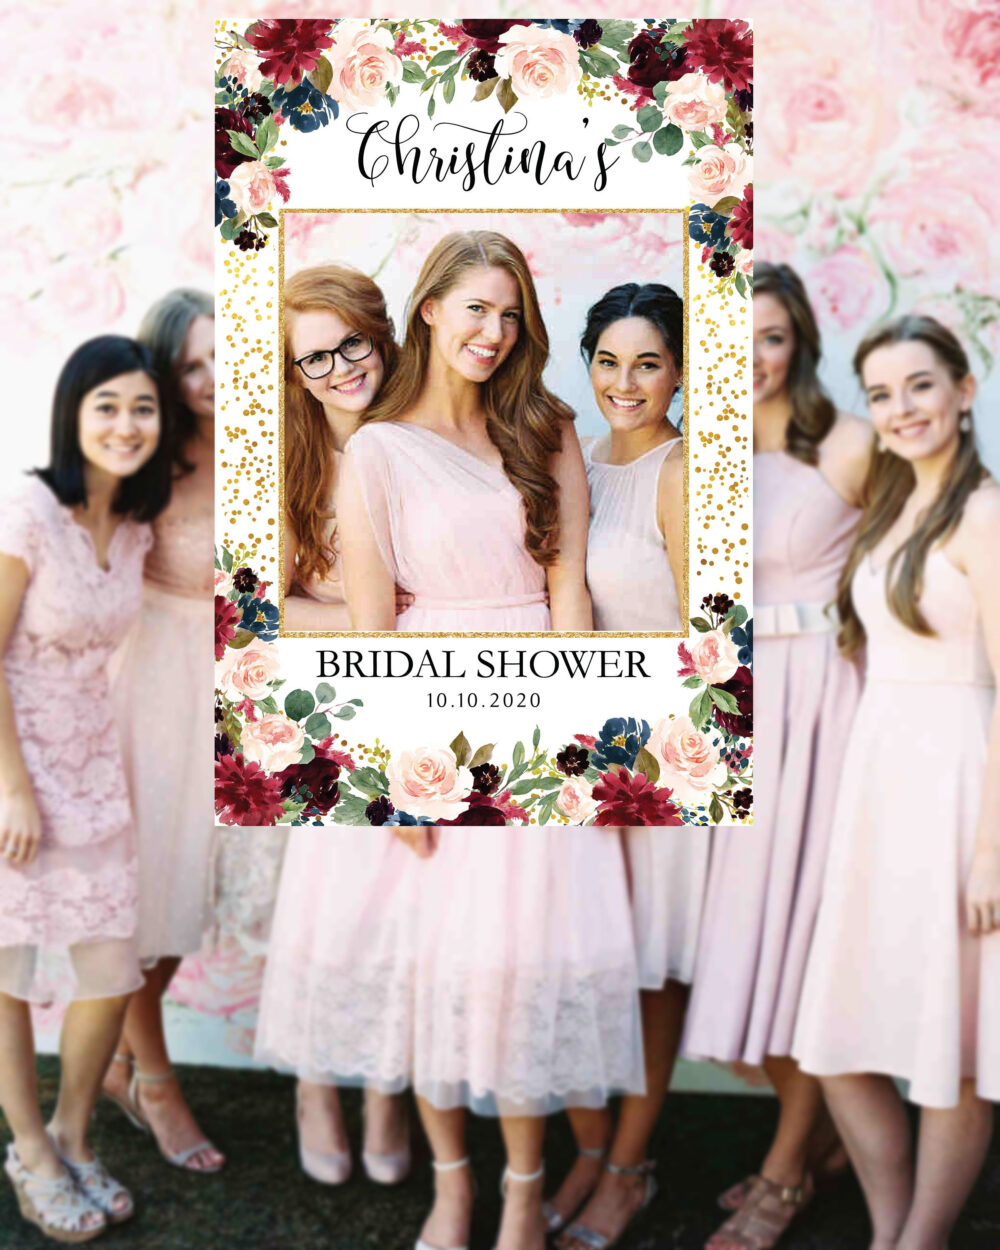 Bridal Shower Photo Prop | Wedding Photo Props Booth Frame Sign Welcome #bpr11